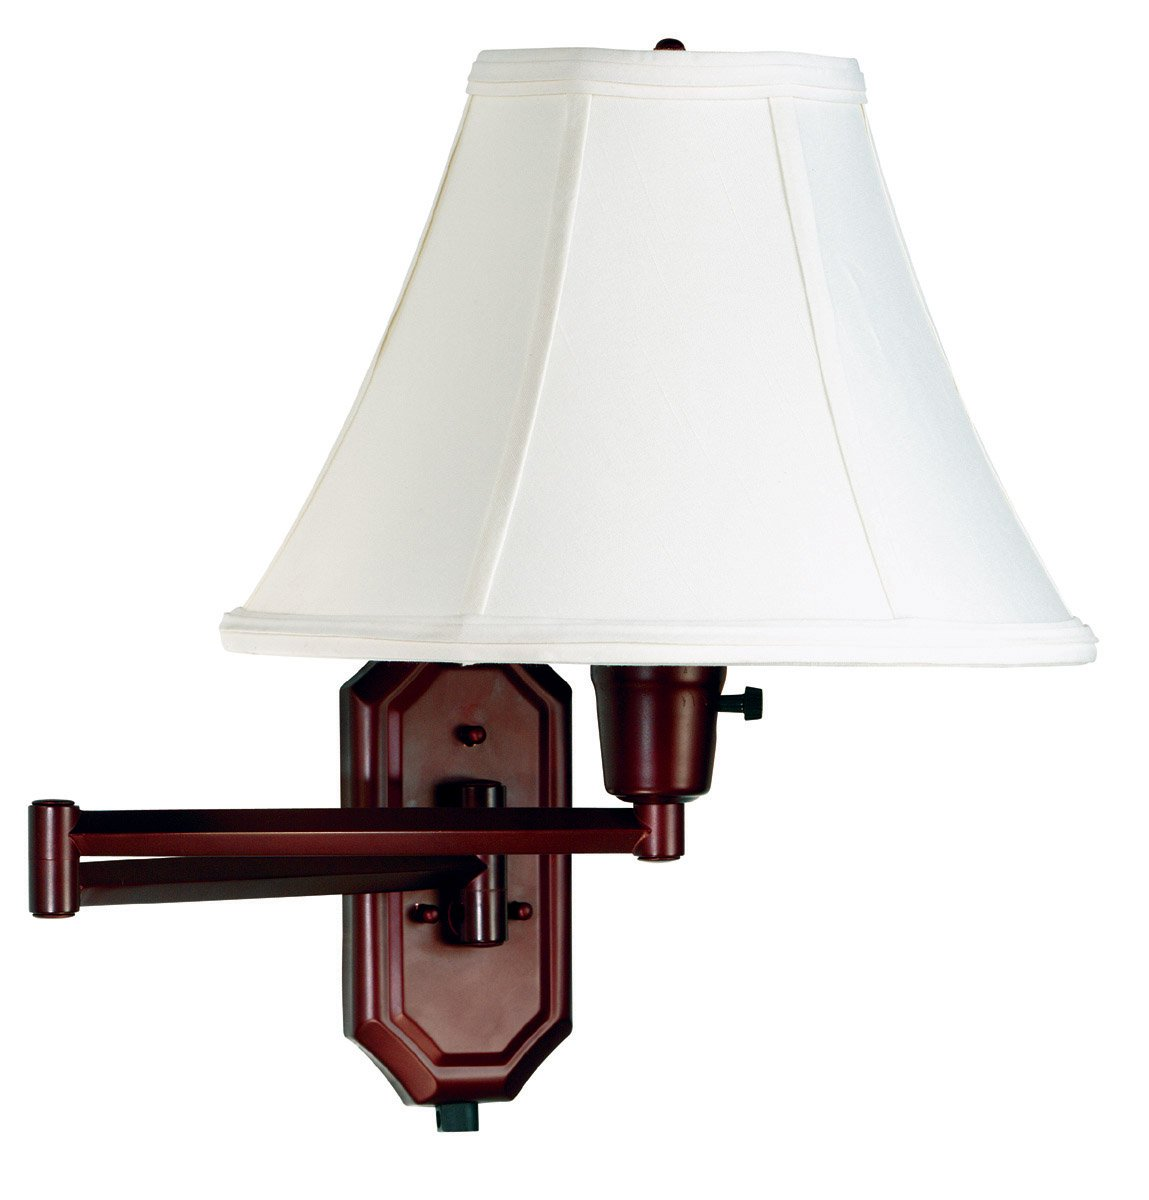 Kenroy Home 30130BRZ Nathaniel Wall Swing Arm Lamp, Bronze - Wall Sconces -  Amazon.com - Kenroy Home 30130BRZ Nathaniel Wall Swing Arm Lamp, Bronze - Wall